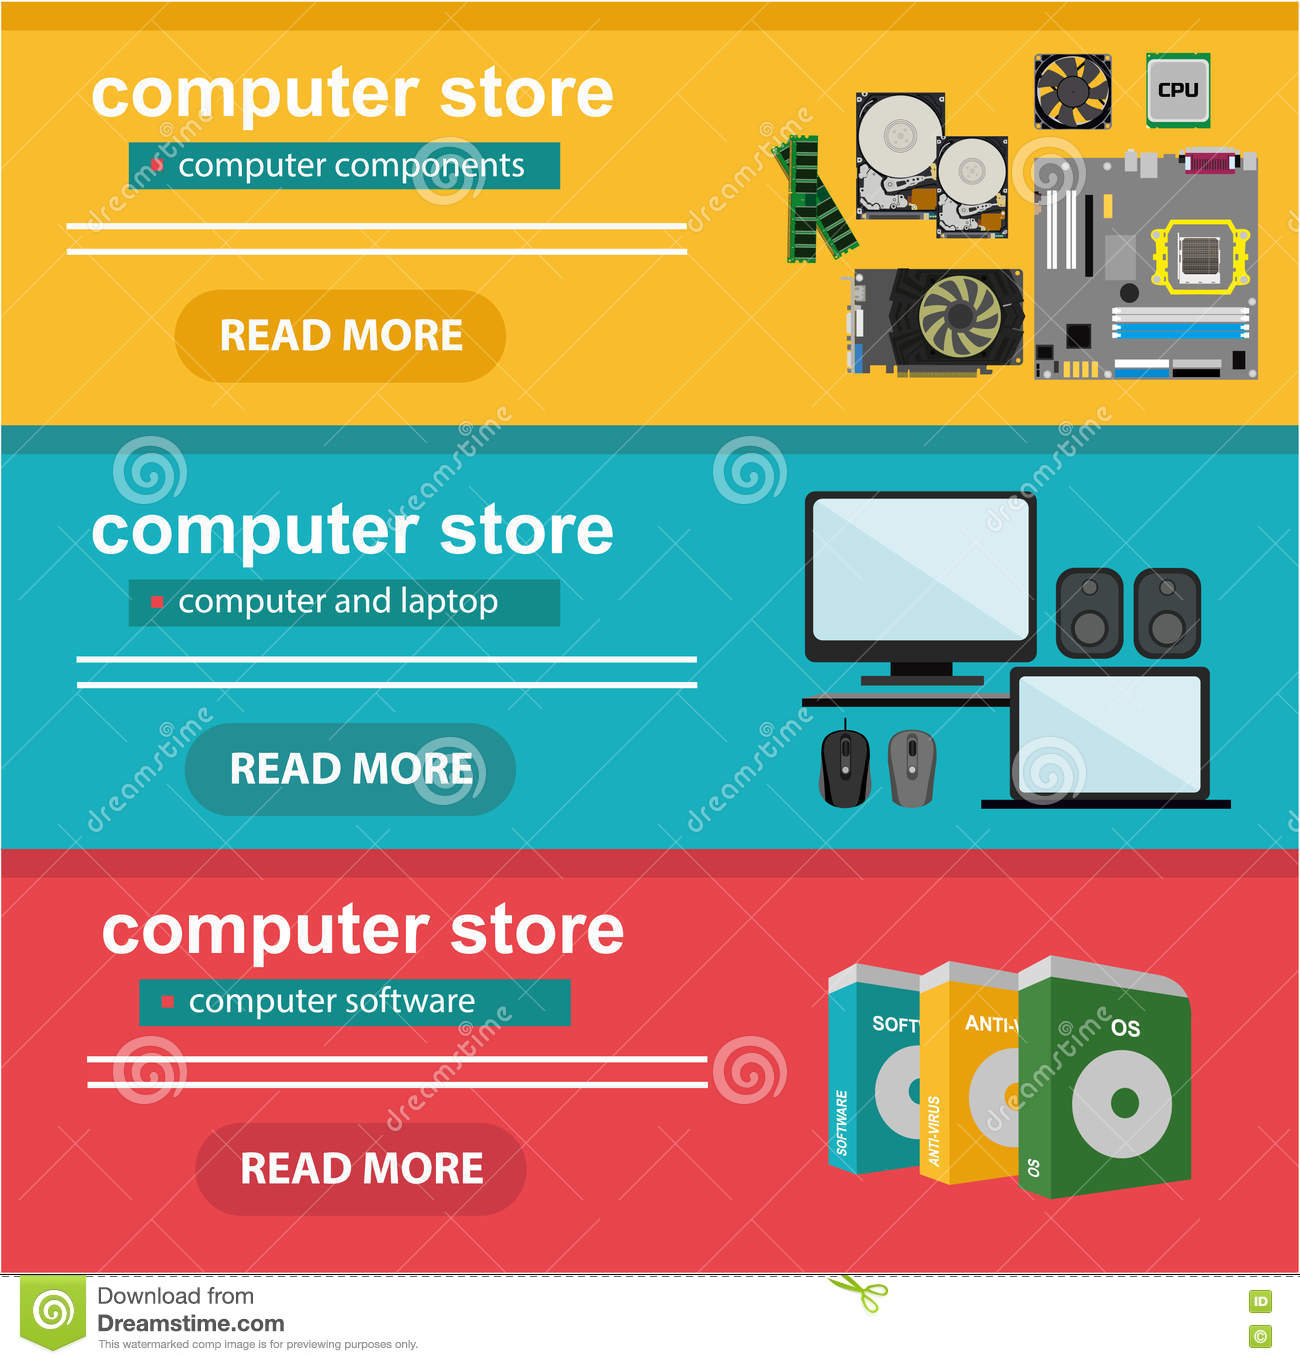 Flat Design Concept Of Computer Store, Sale Of Computers